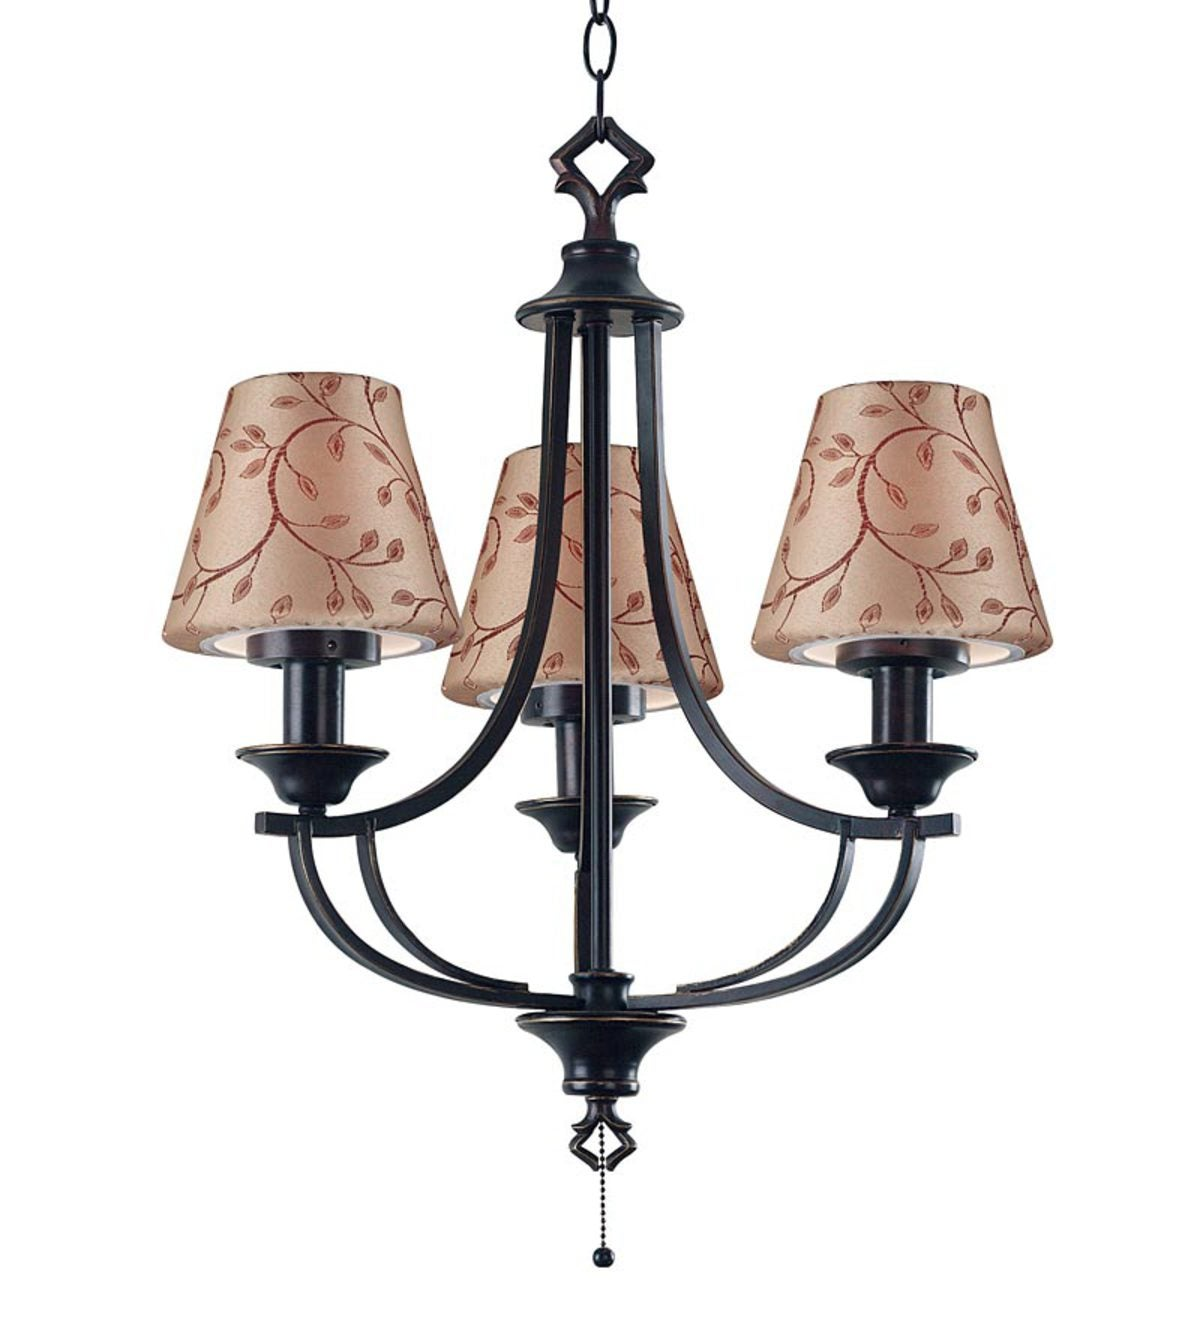 All-Weather Belmont 3-Light Outdoor Chandelier